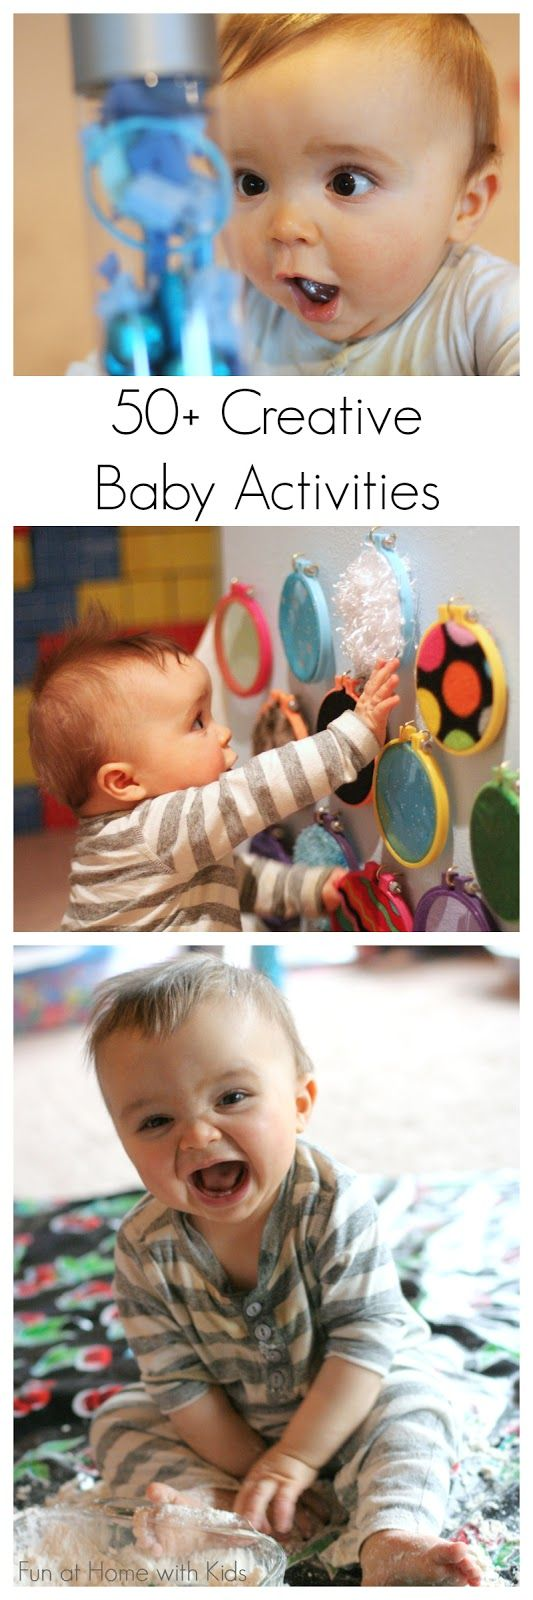 Over 50 ways to entertain your baby!